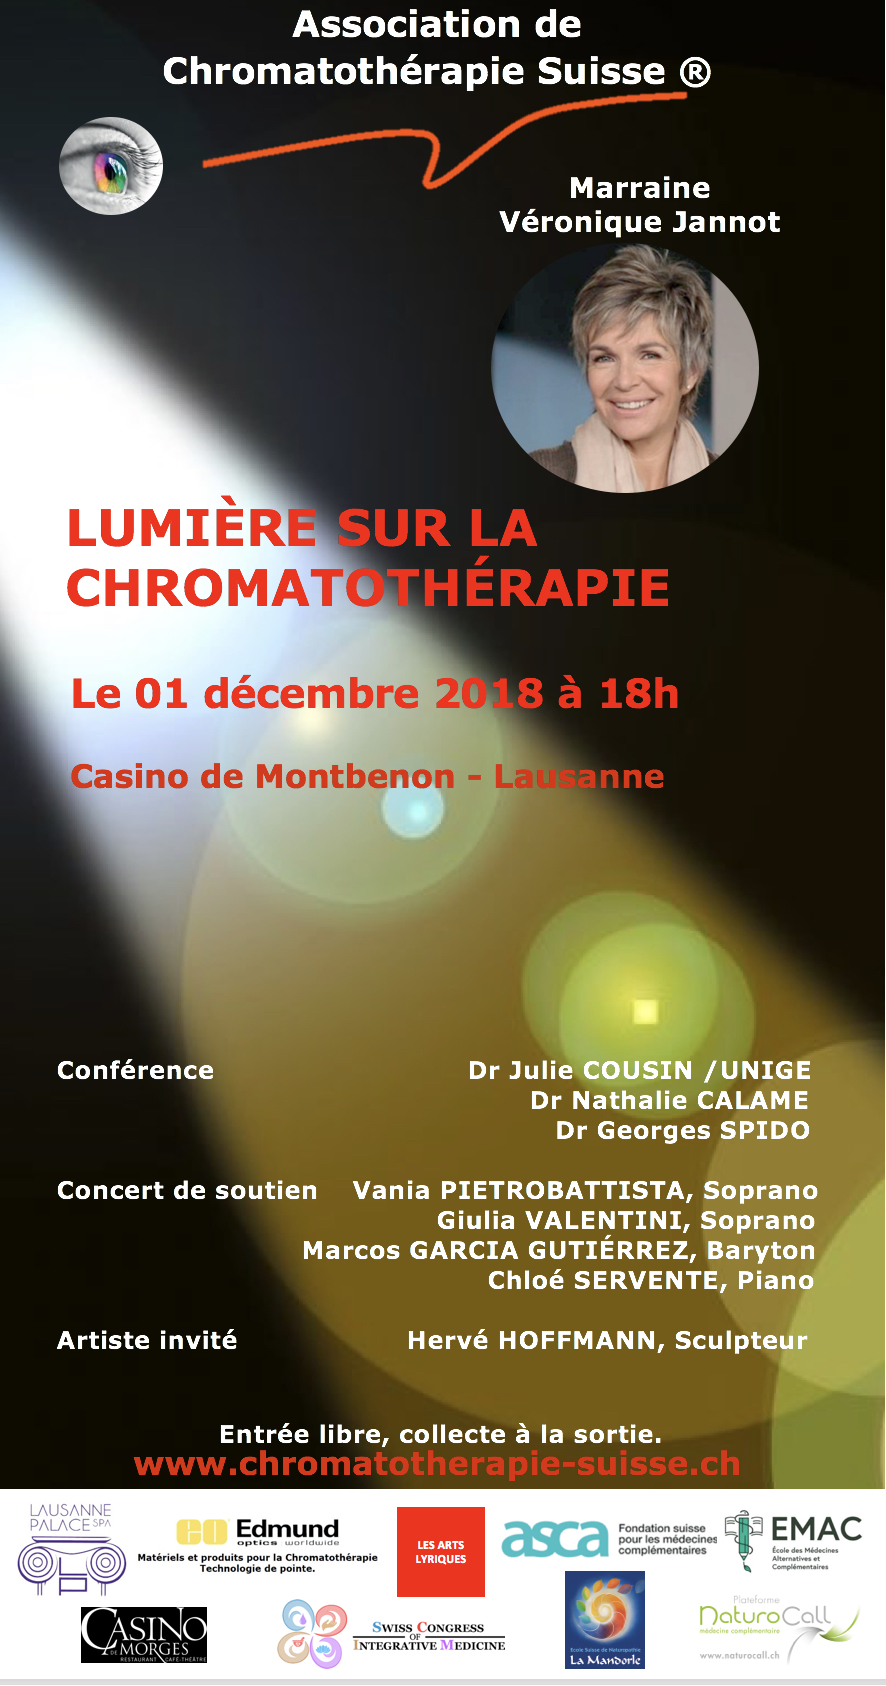 Association de Chromatothérapie Suisse 2018 : News